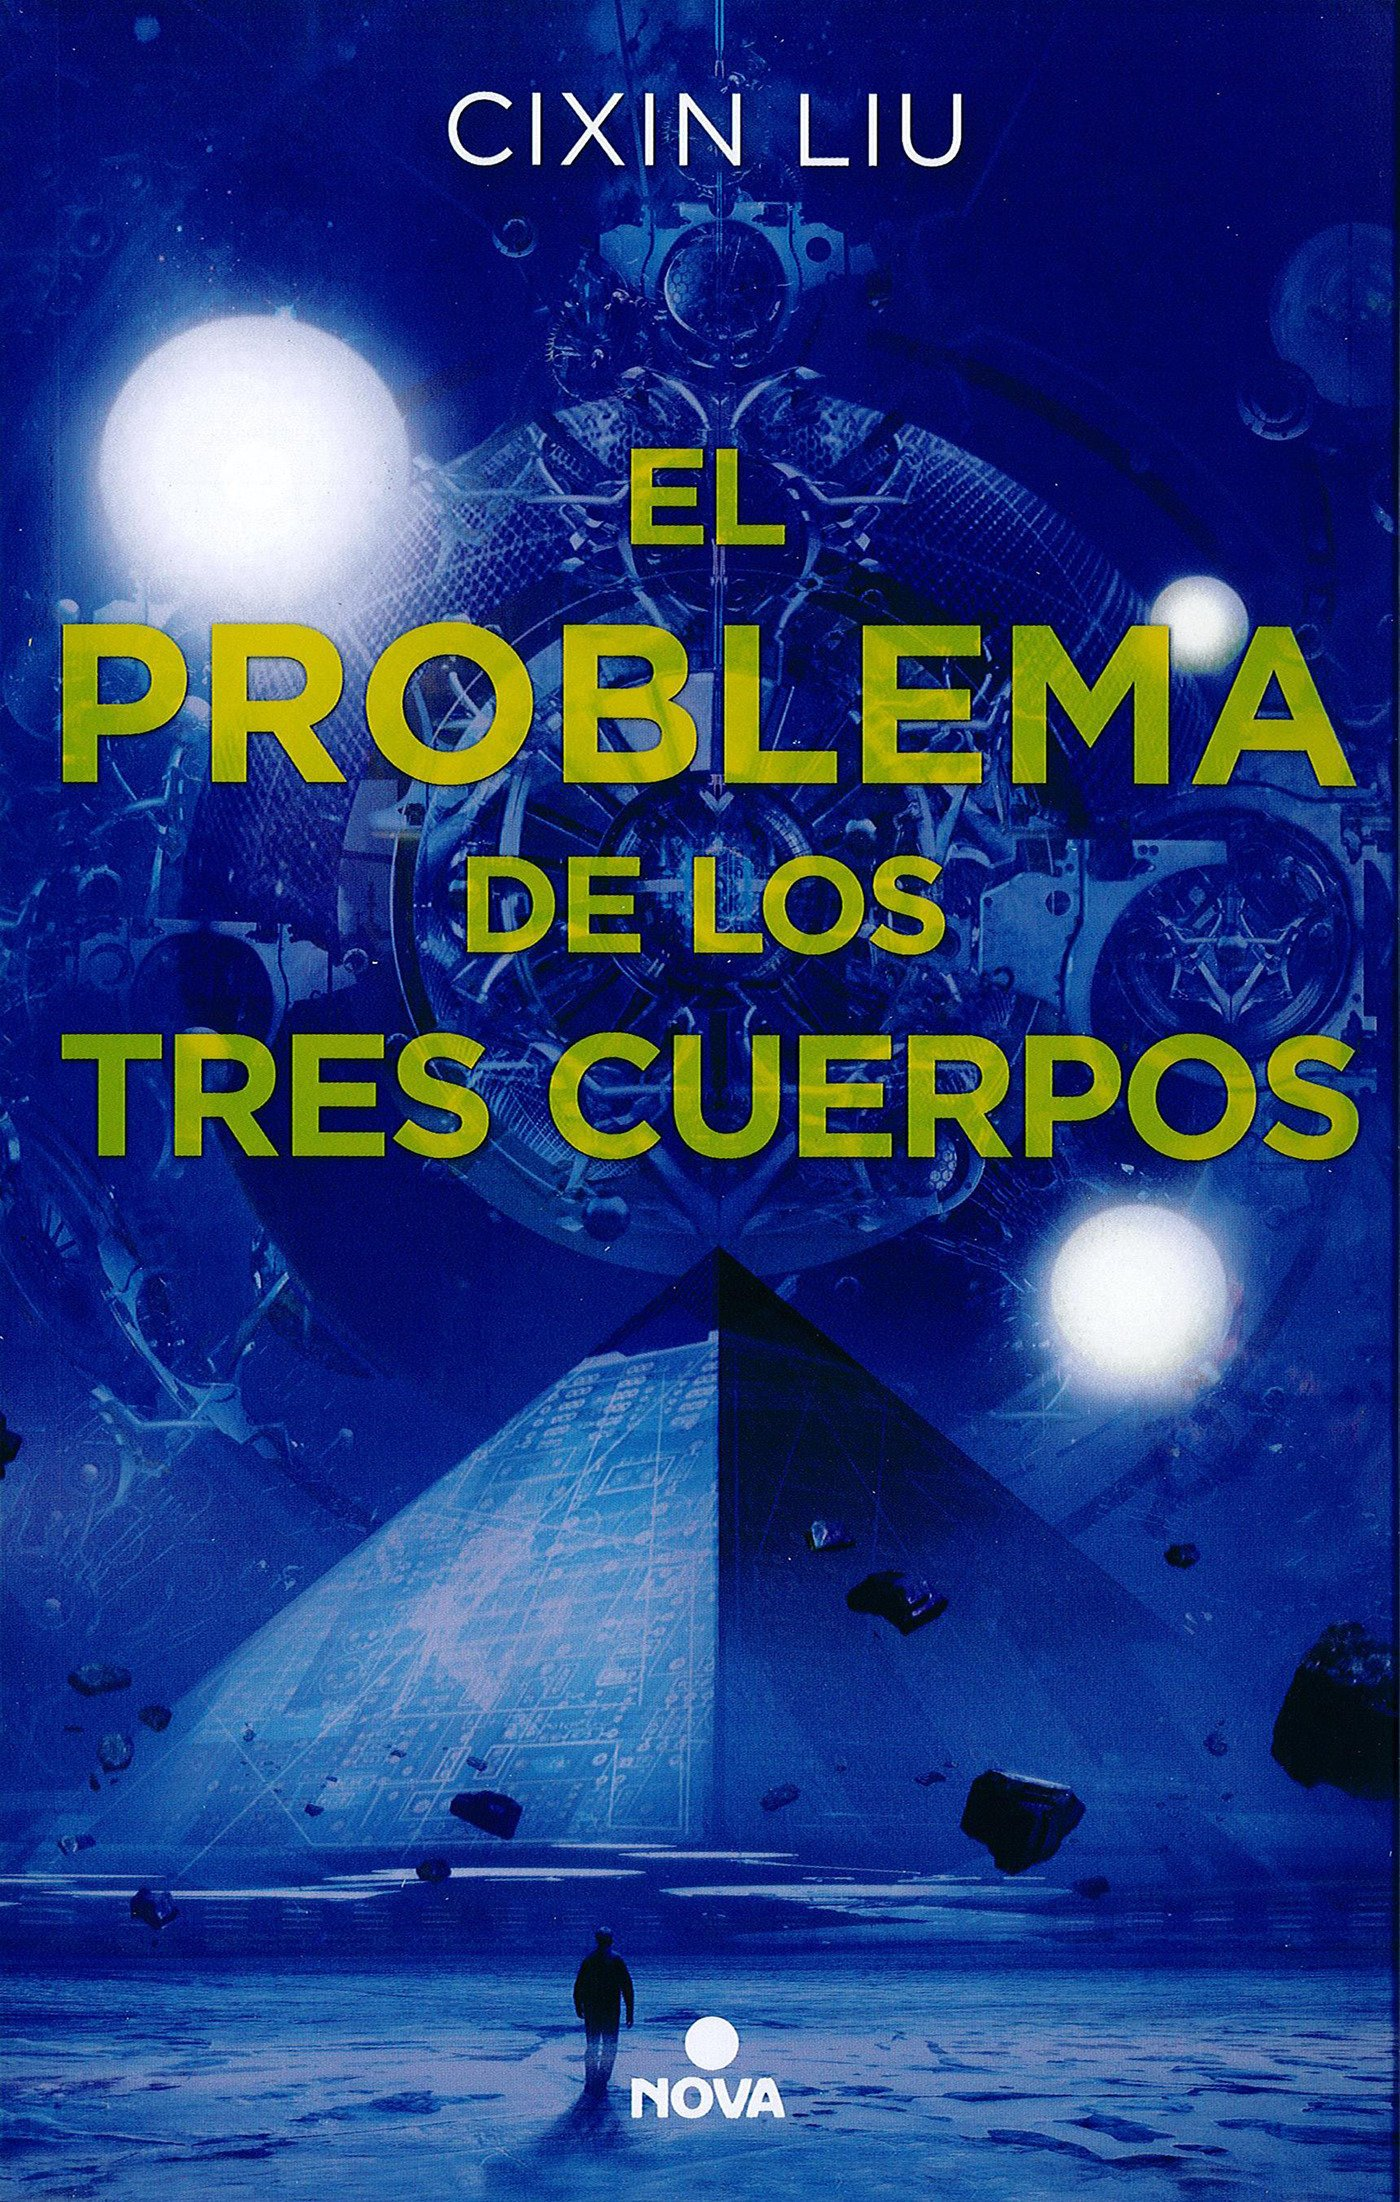 El problema de los tres cuerpos (Trilogía de los Tres Cuerpos 1) (NOVA) Tapa blanda – 28 sep 2016 Cixin Liu 8466659730 Science fiction. Science Fiction - General